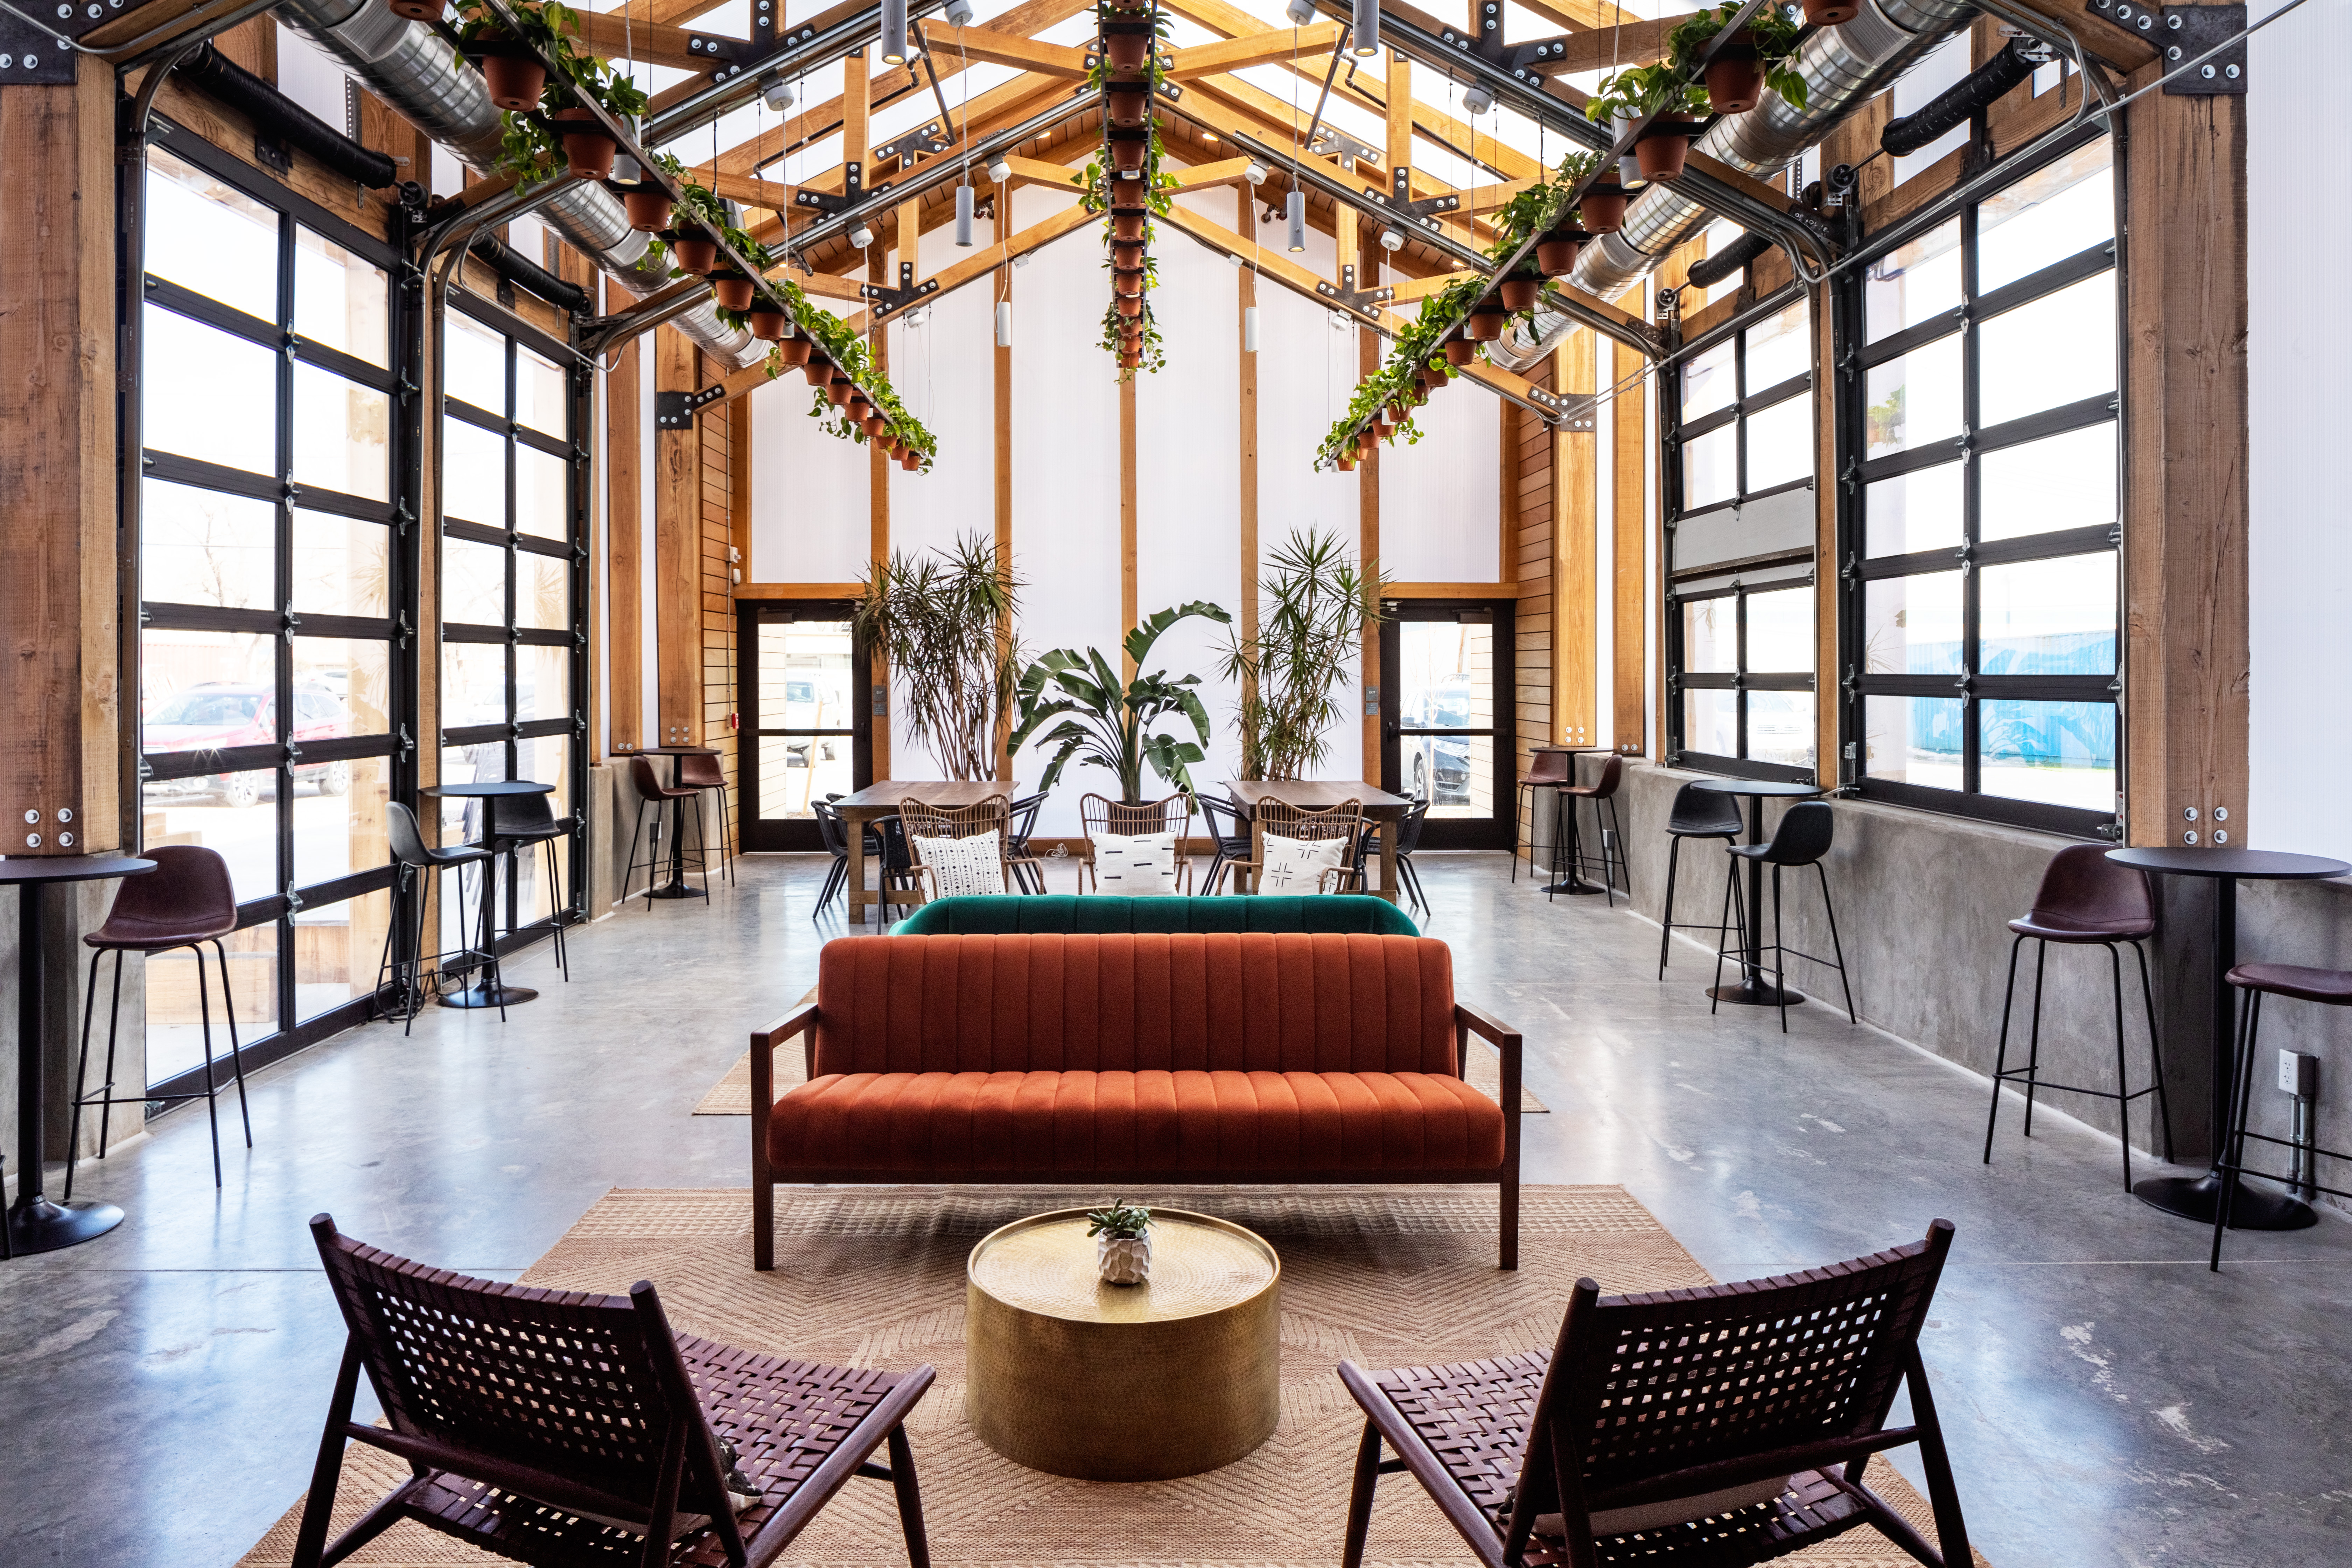 Design Talk Double Feature | Crafting Creative Hospitality Together